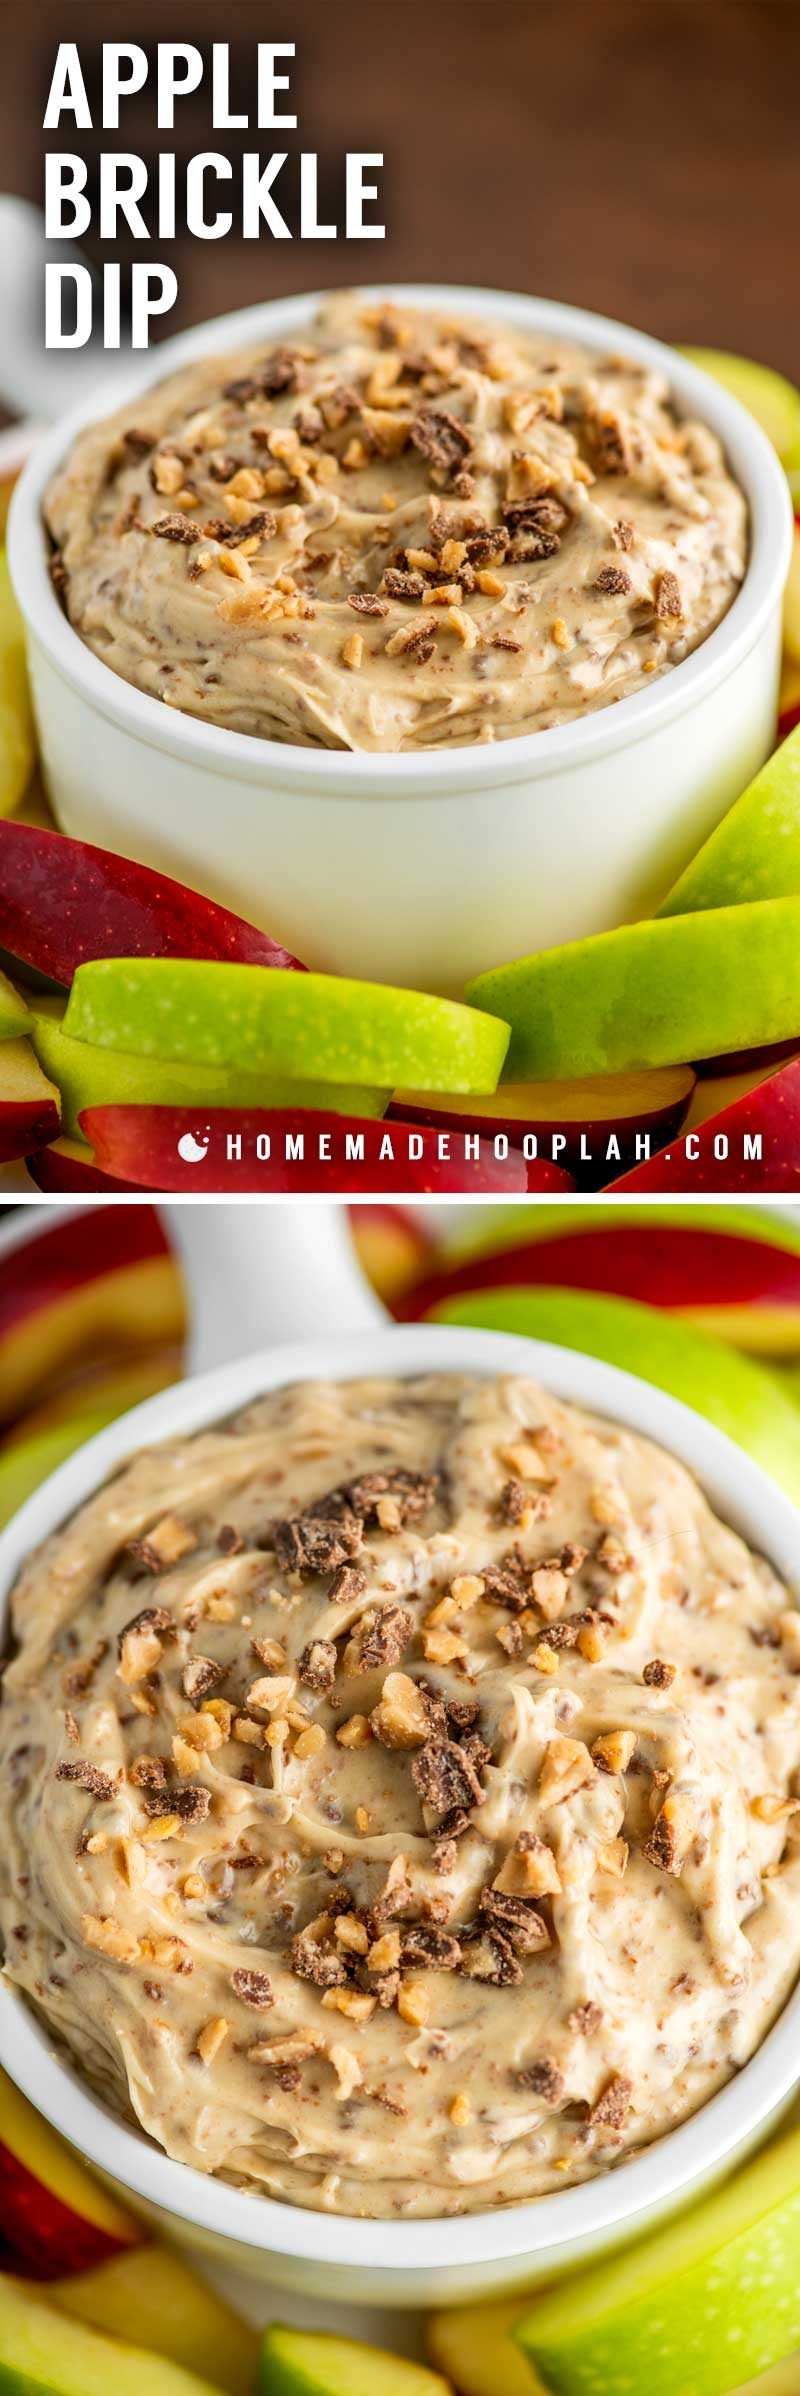 How to make a fruit dip with toffee bits or crushed Heath bars.